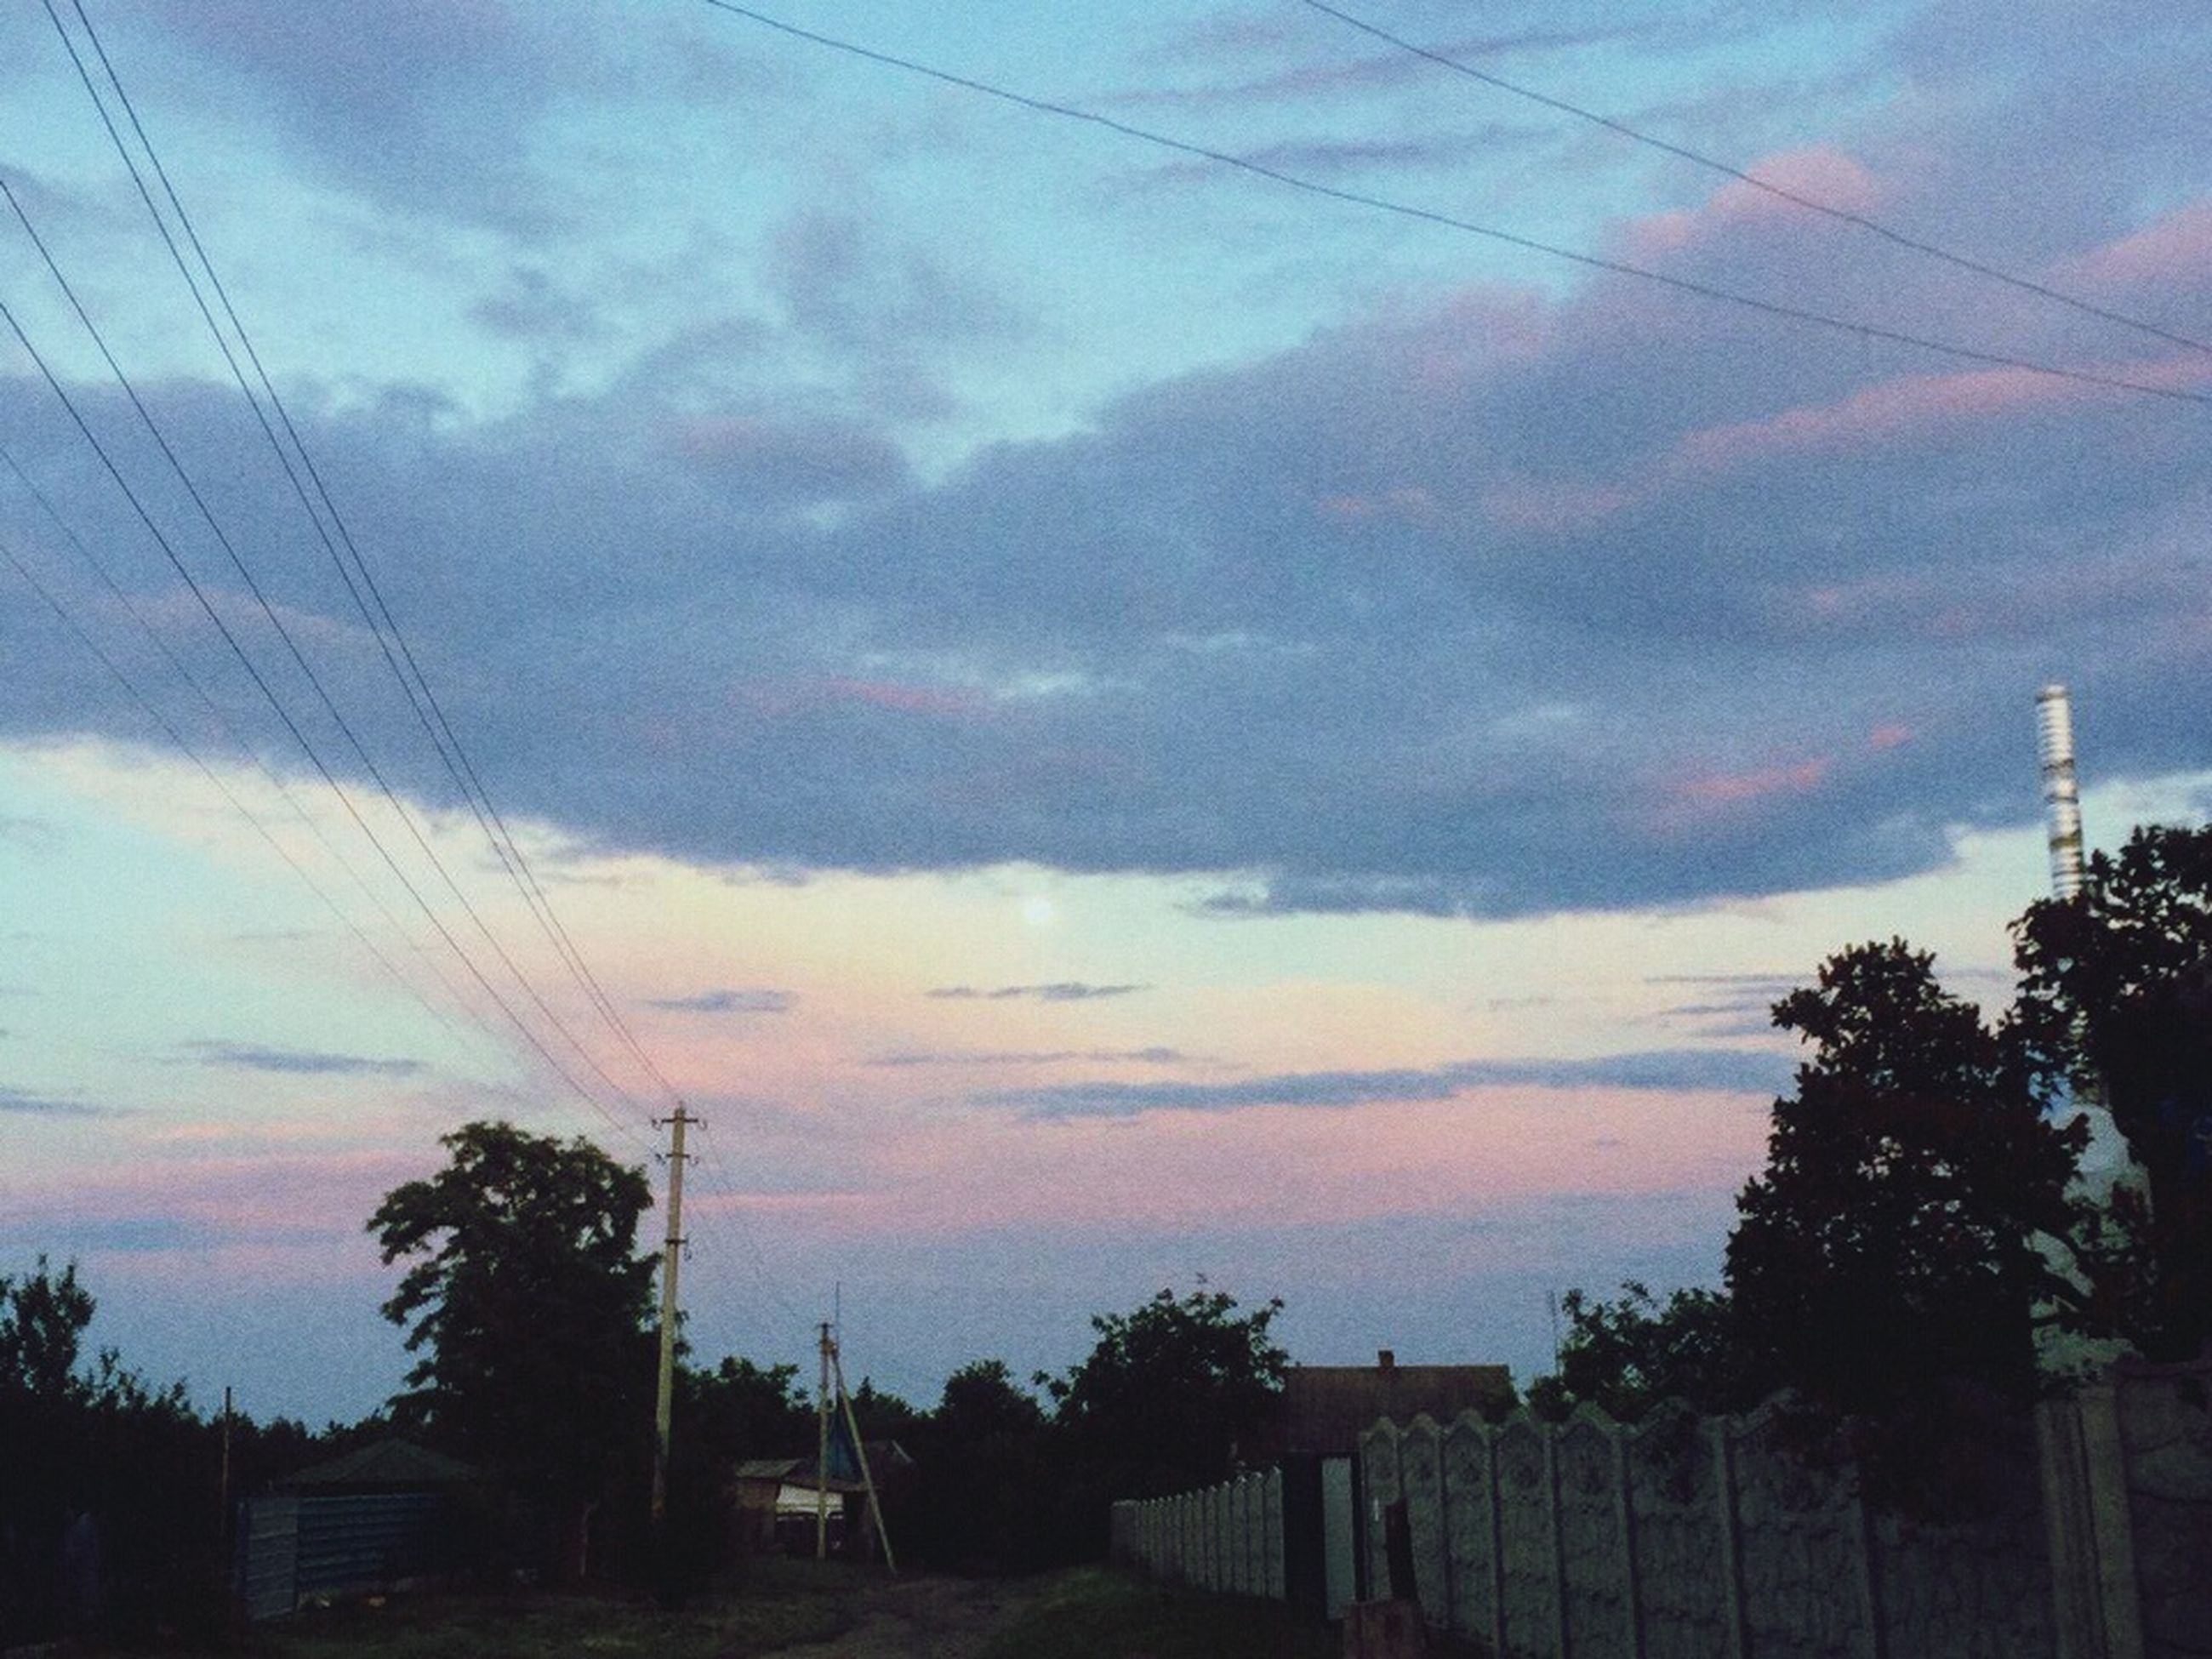 sky, power line, cloud - sky, sunset, tree, electricity pylon, silhouette, cable, cloudy, electricity, cloud, power supply, low angle view, connection, built structure, scenics, beauty in nature, dusk, tranquility, nature